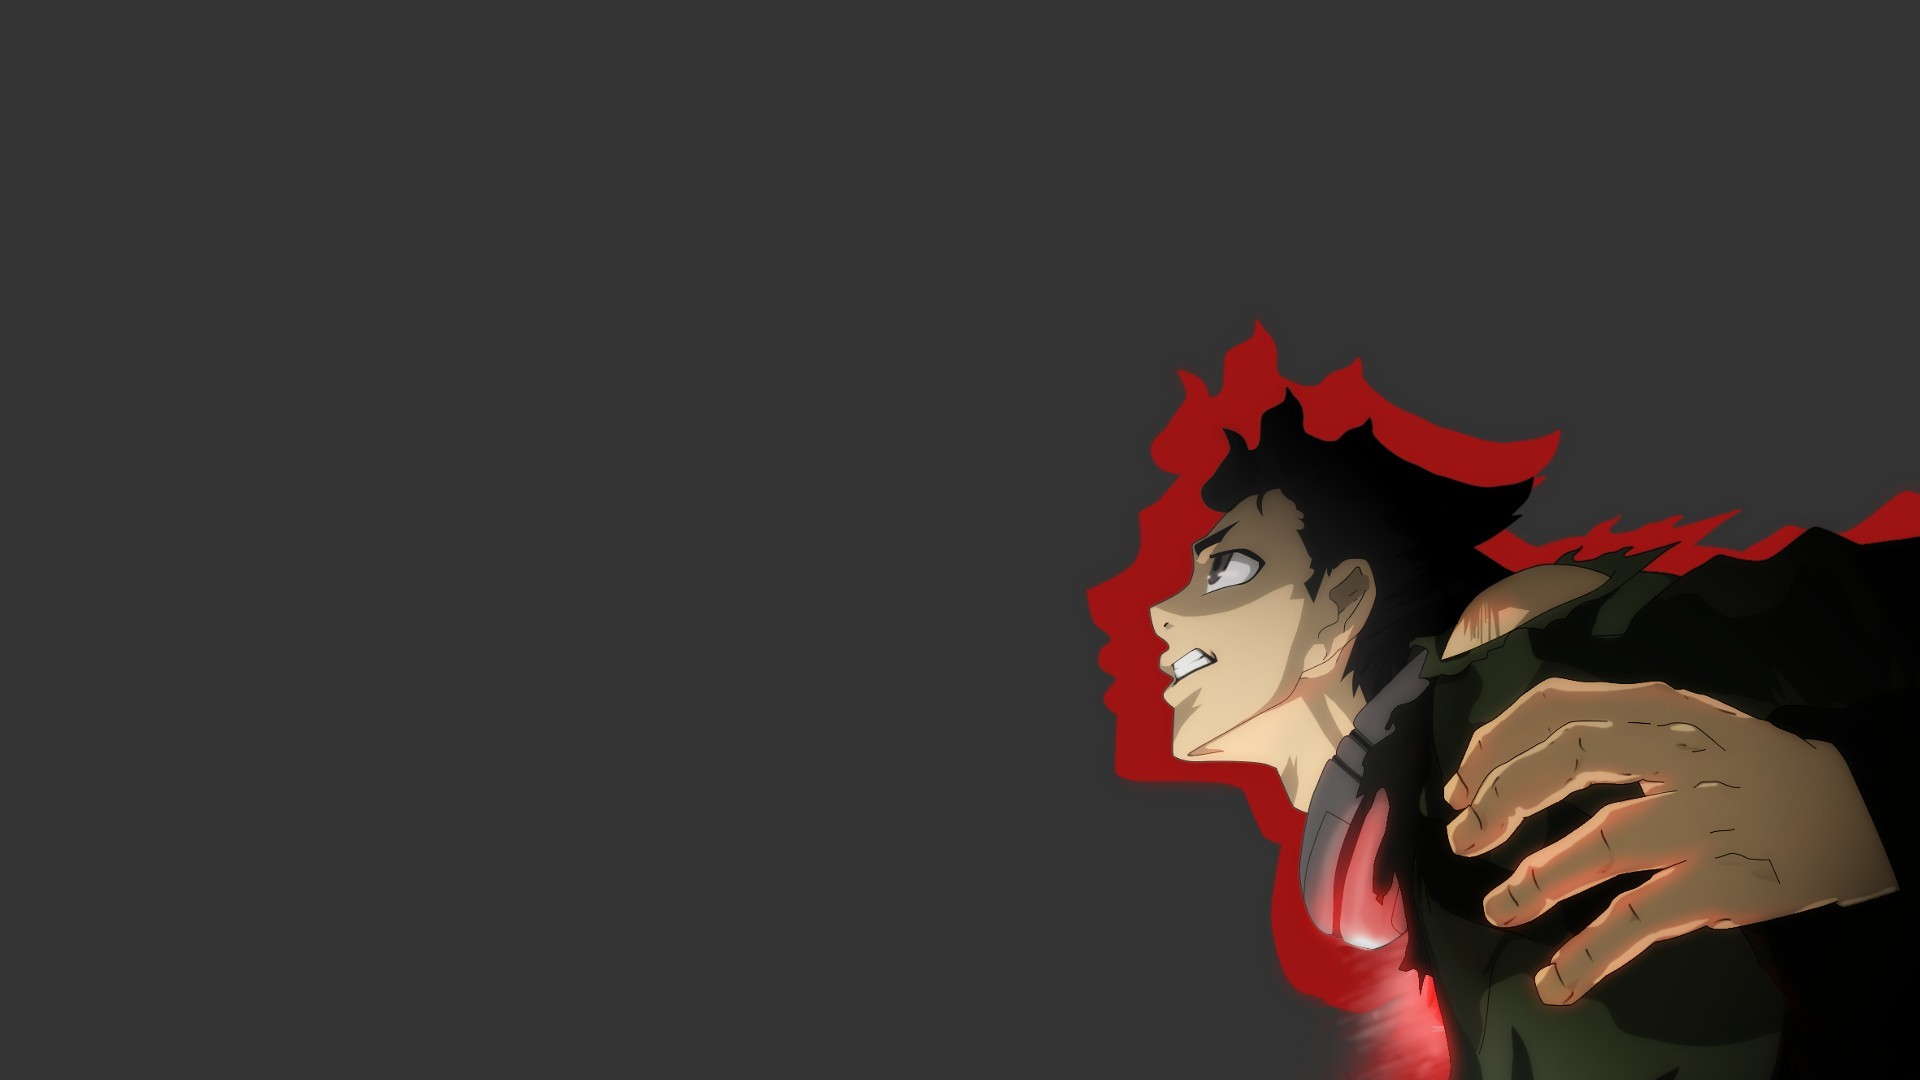 1920x1080 deadman-wonderland-wallpaper-19-WTG30313985